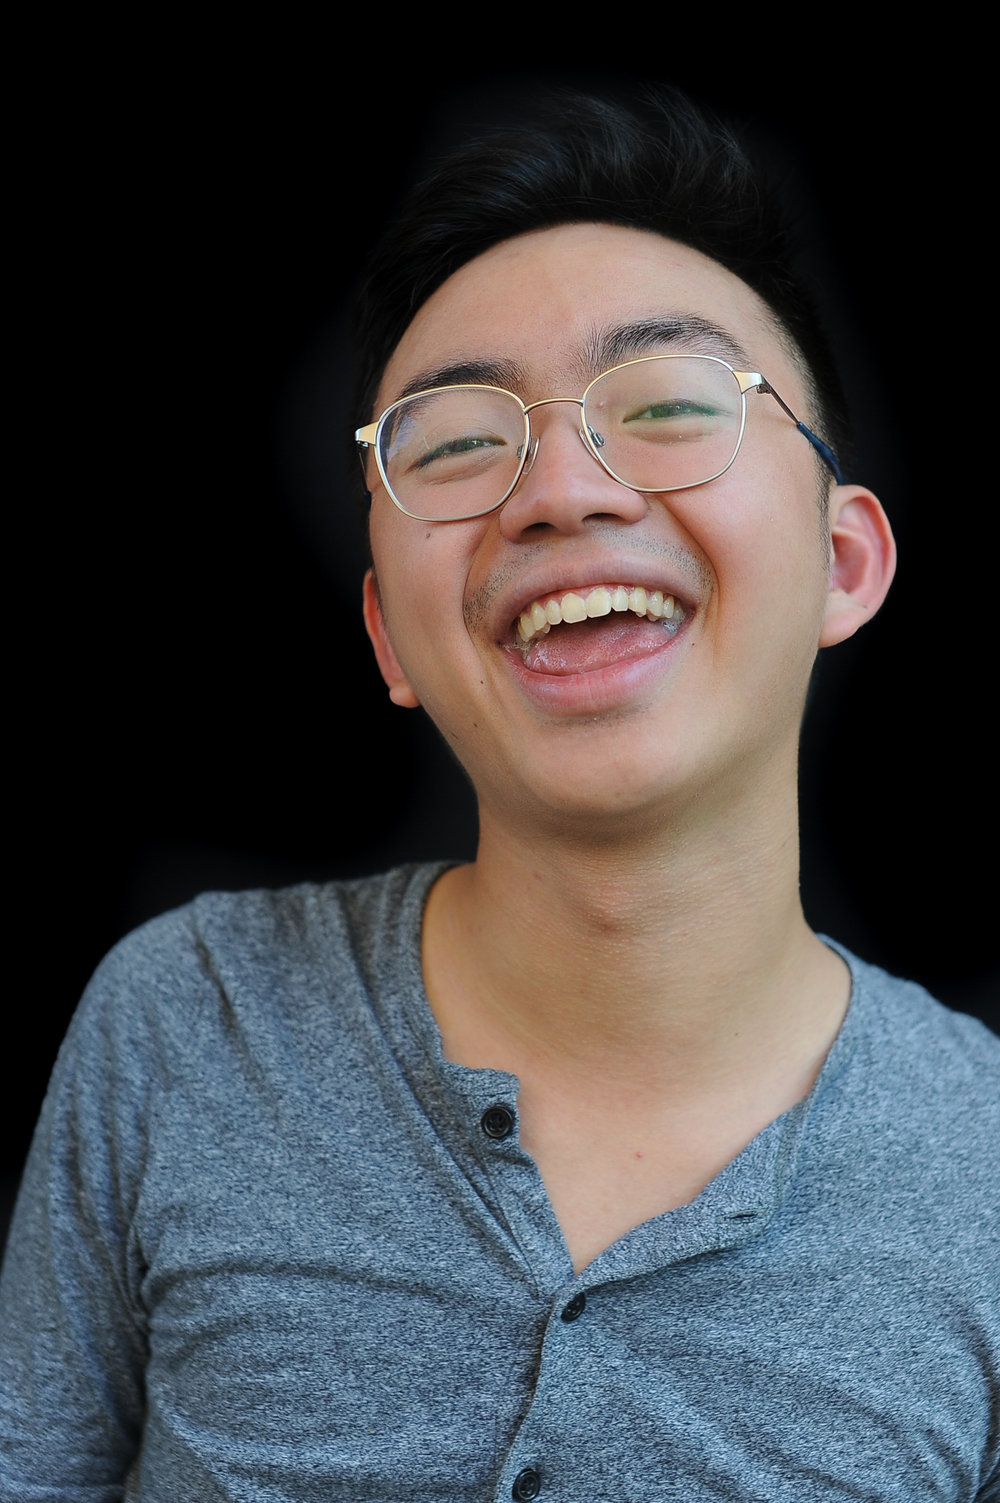 Name: Dustin Liu